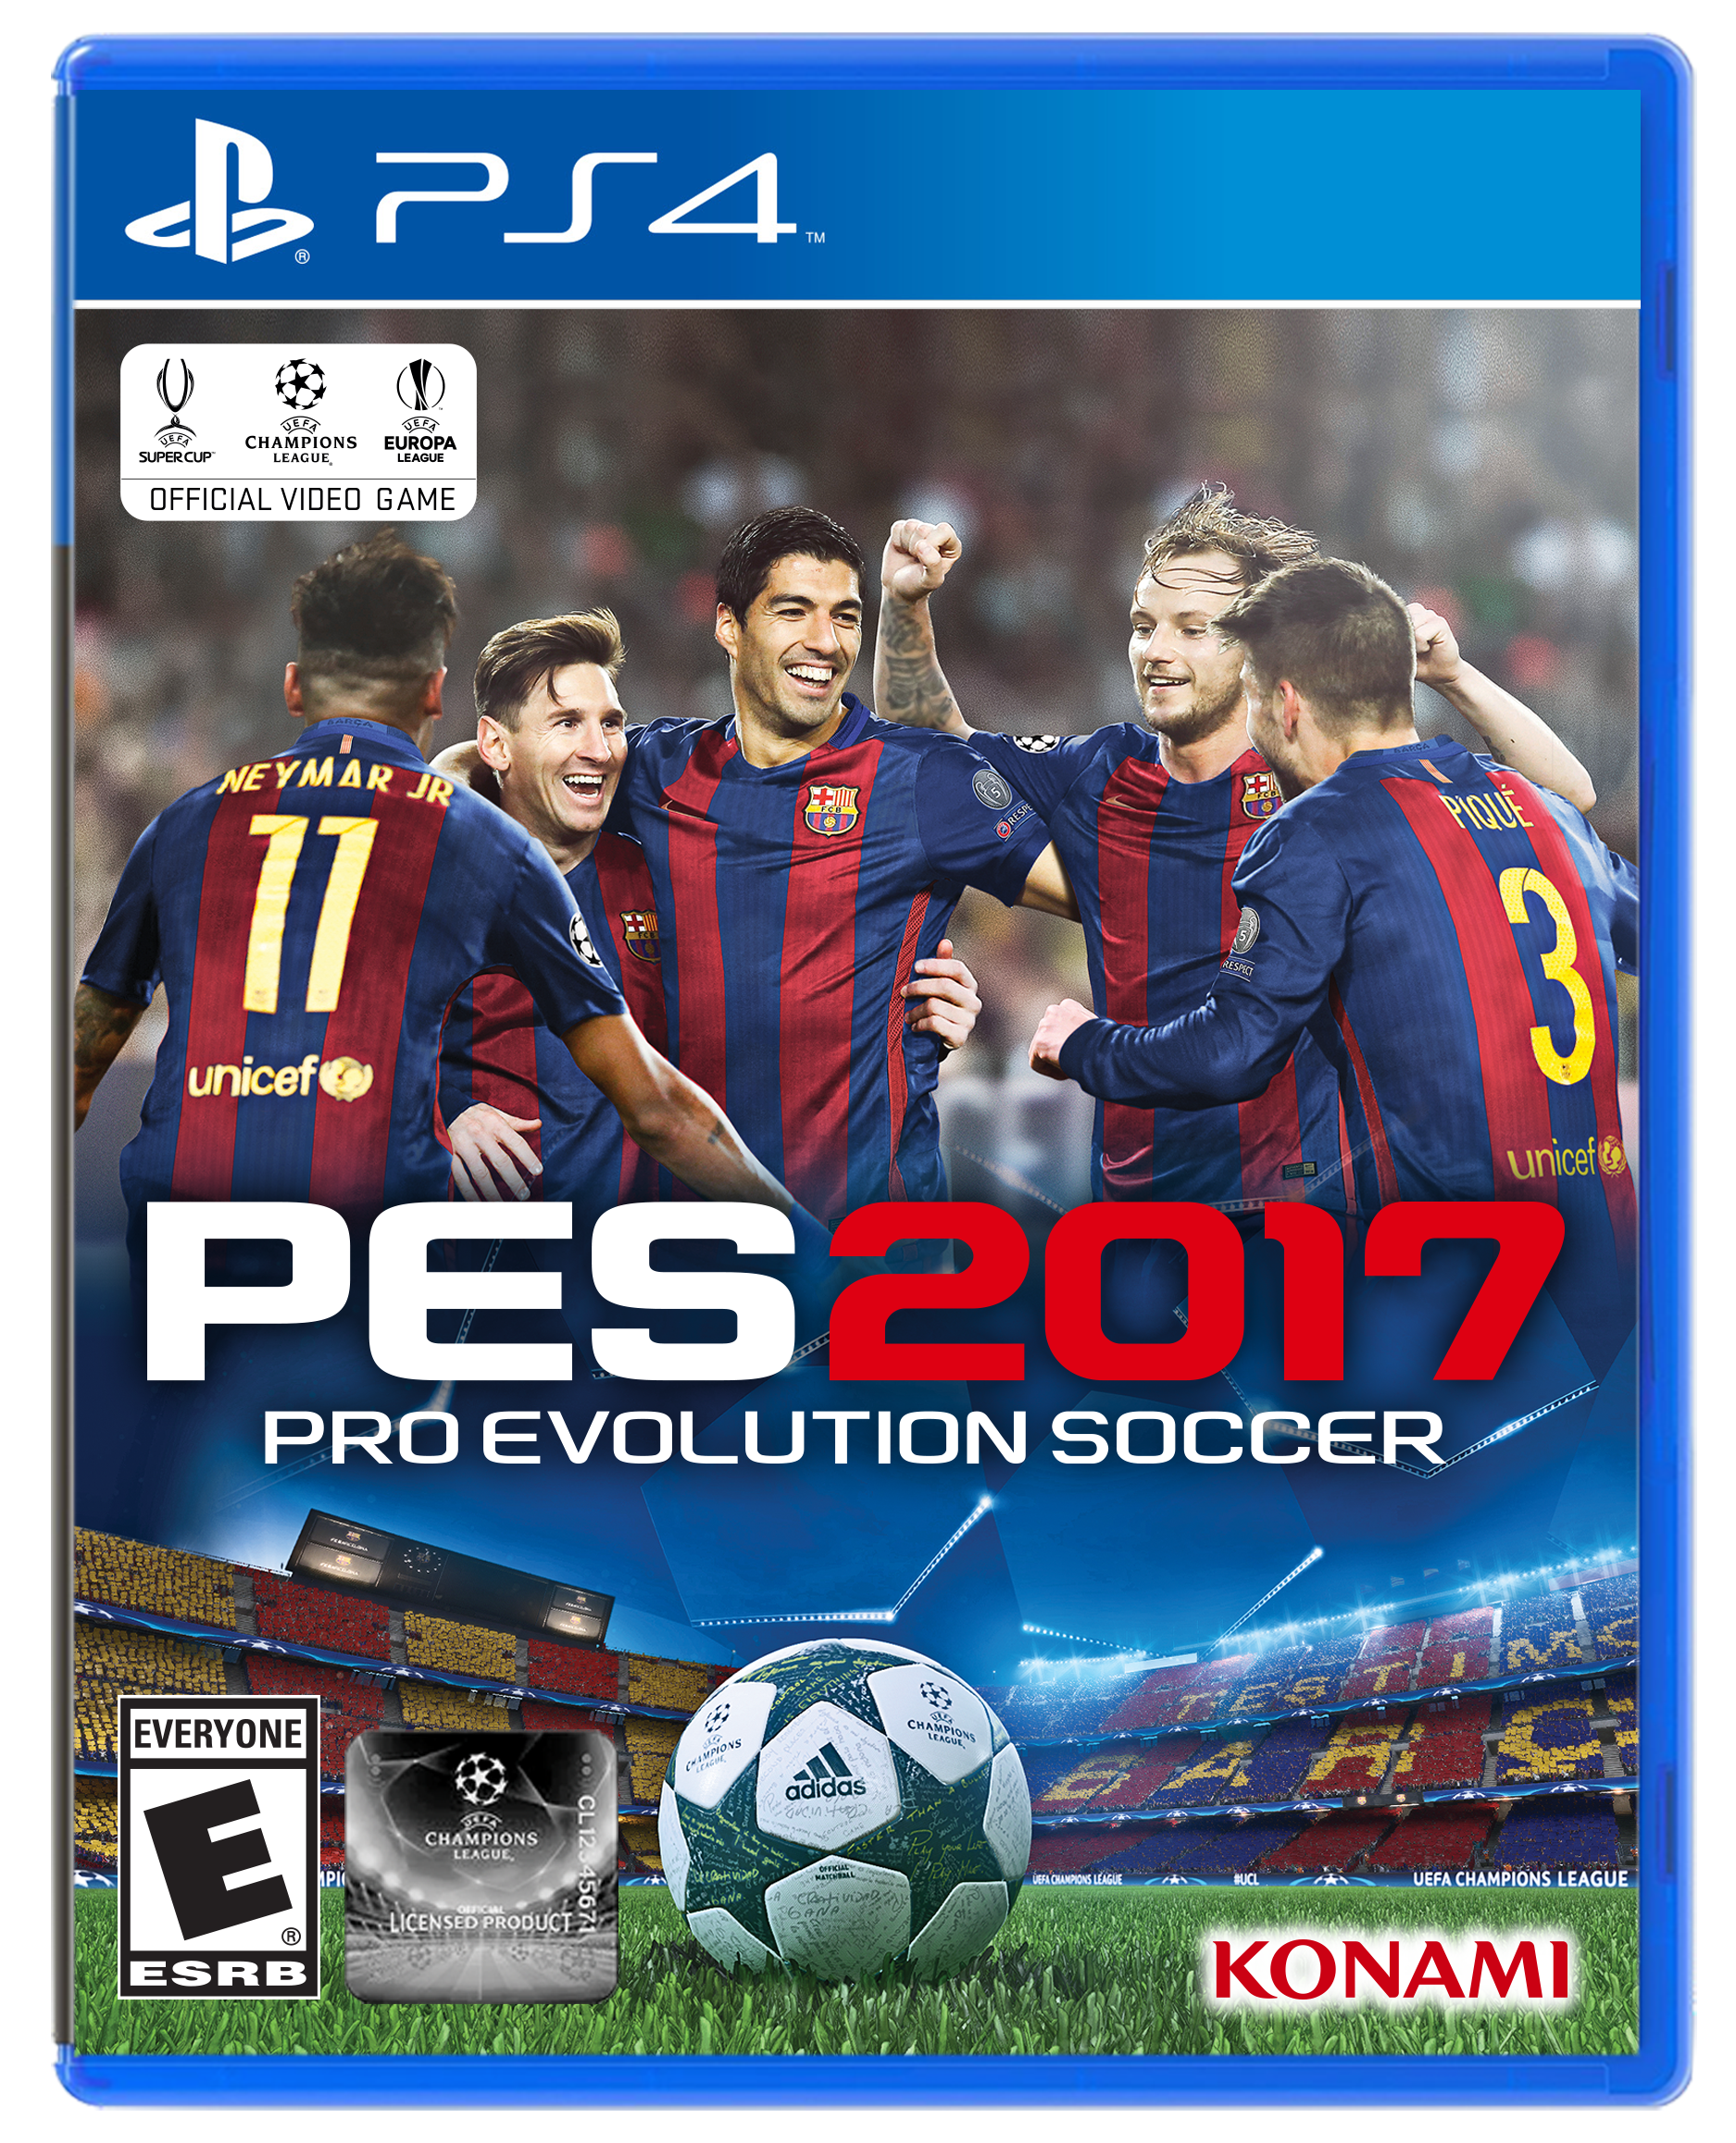 Pro Evolution Soccer 2017 | PlayStation 4 | GameStop